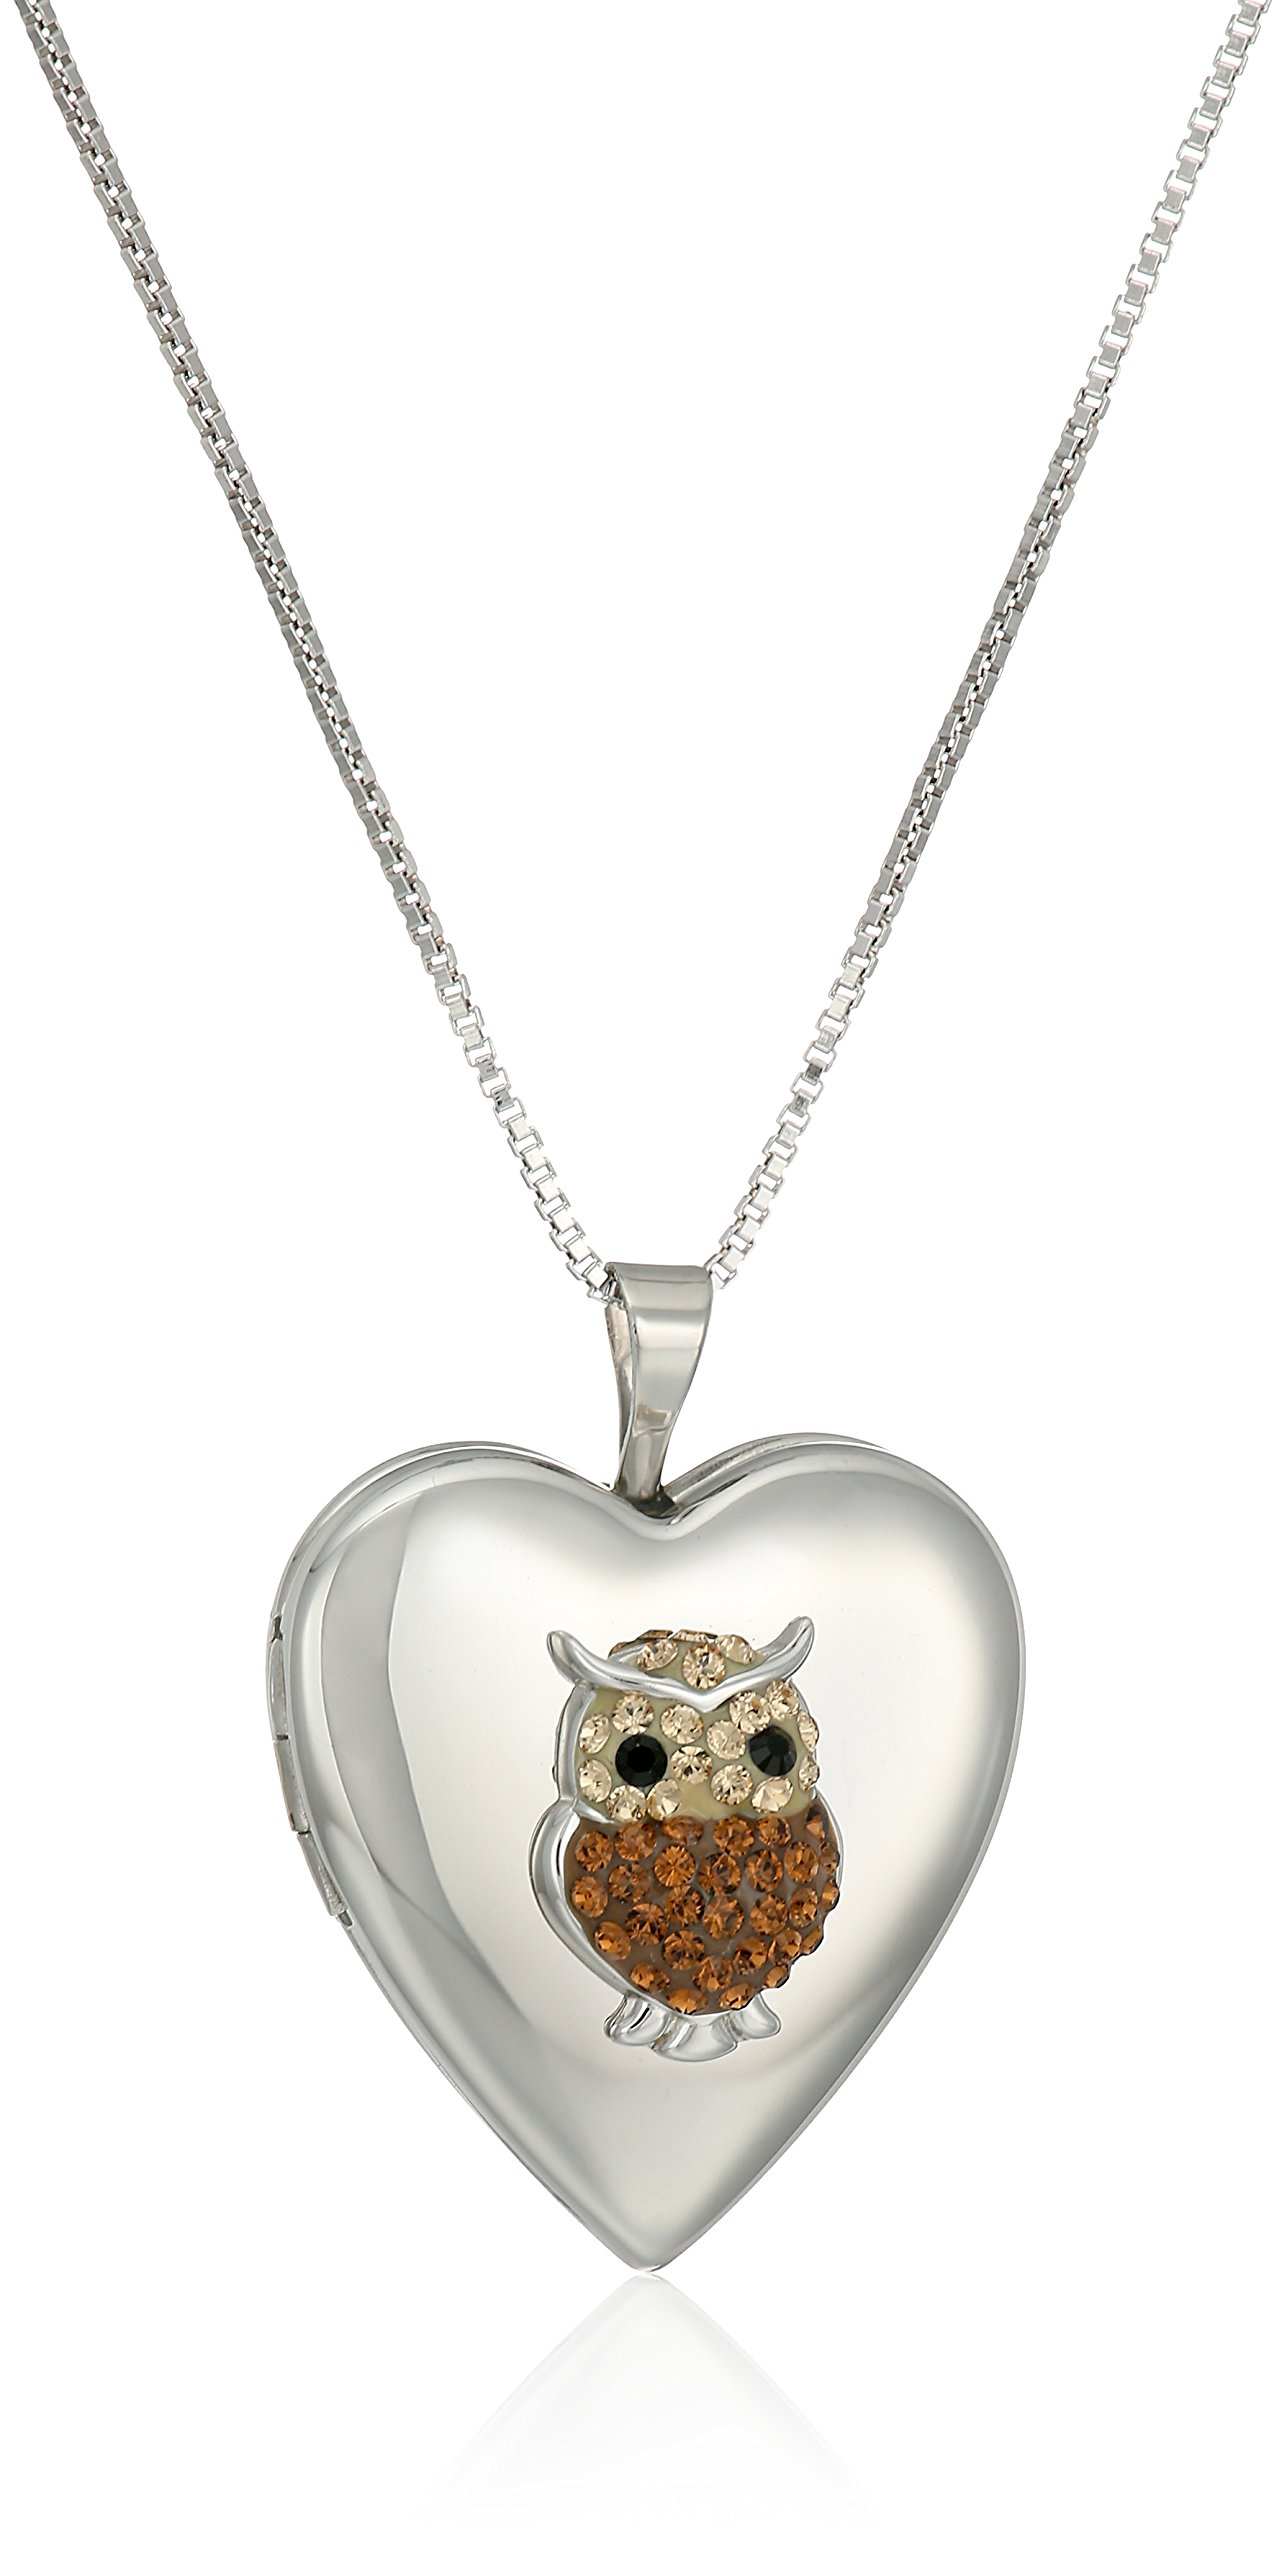 Sterling Silver Heart Crystal Owl with Swarovski Elements Locket Necklace, 18''